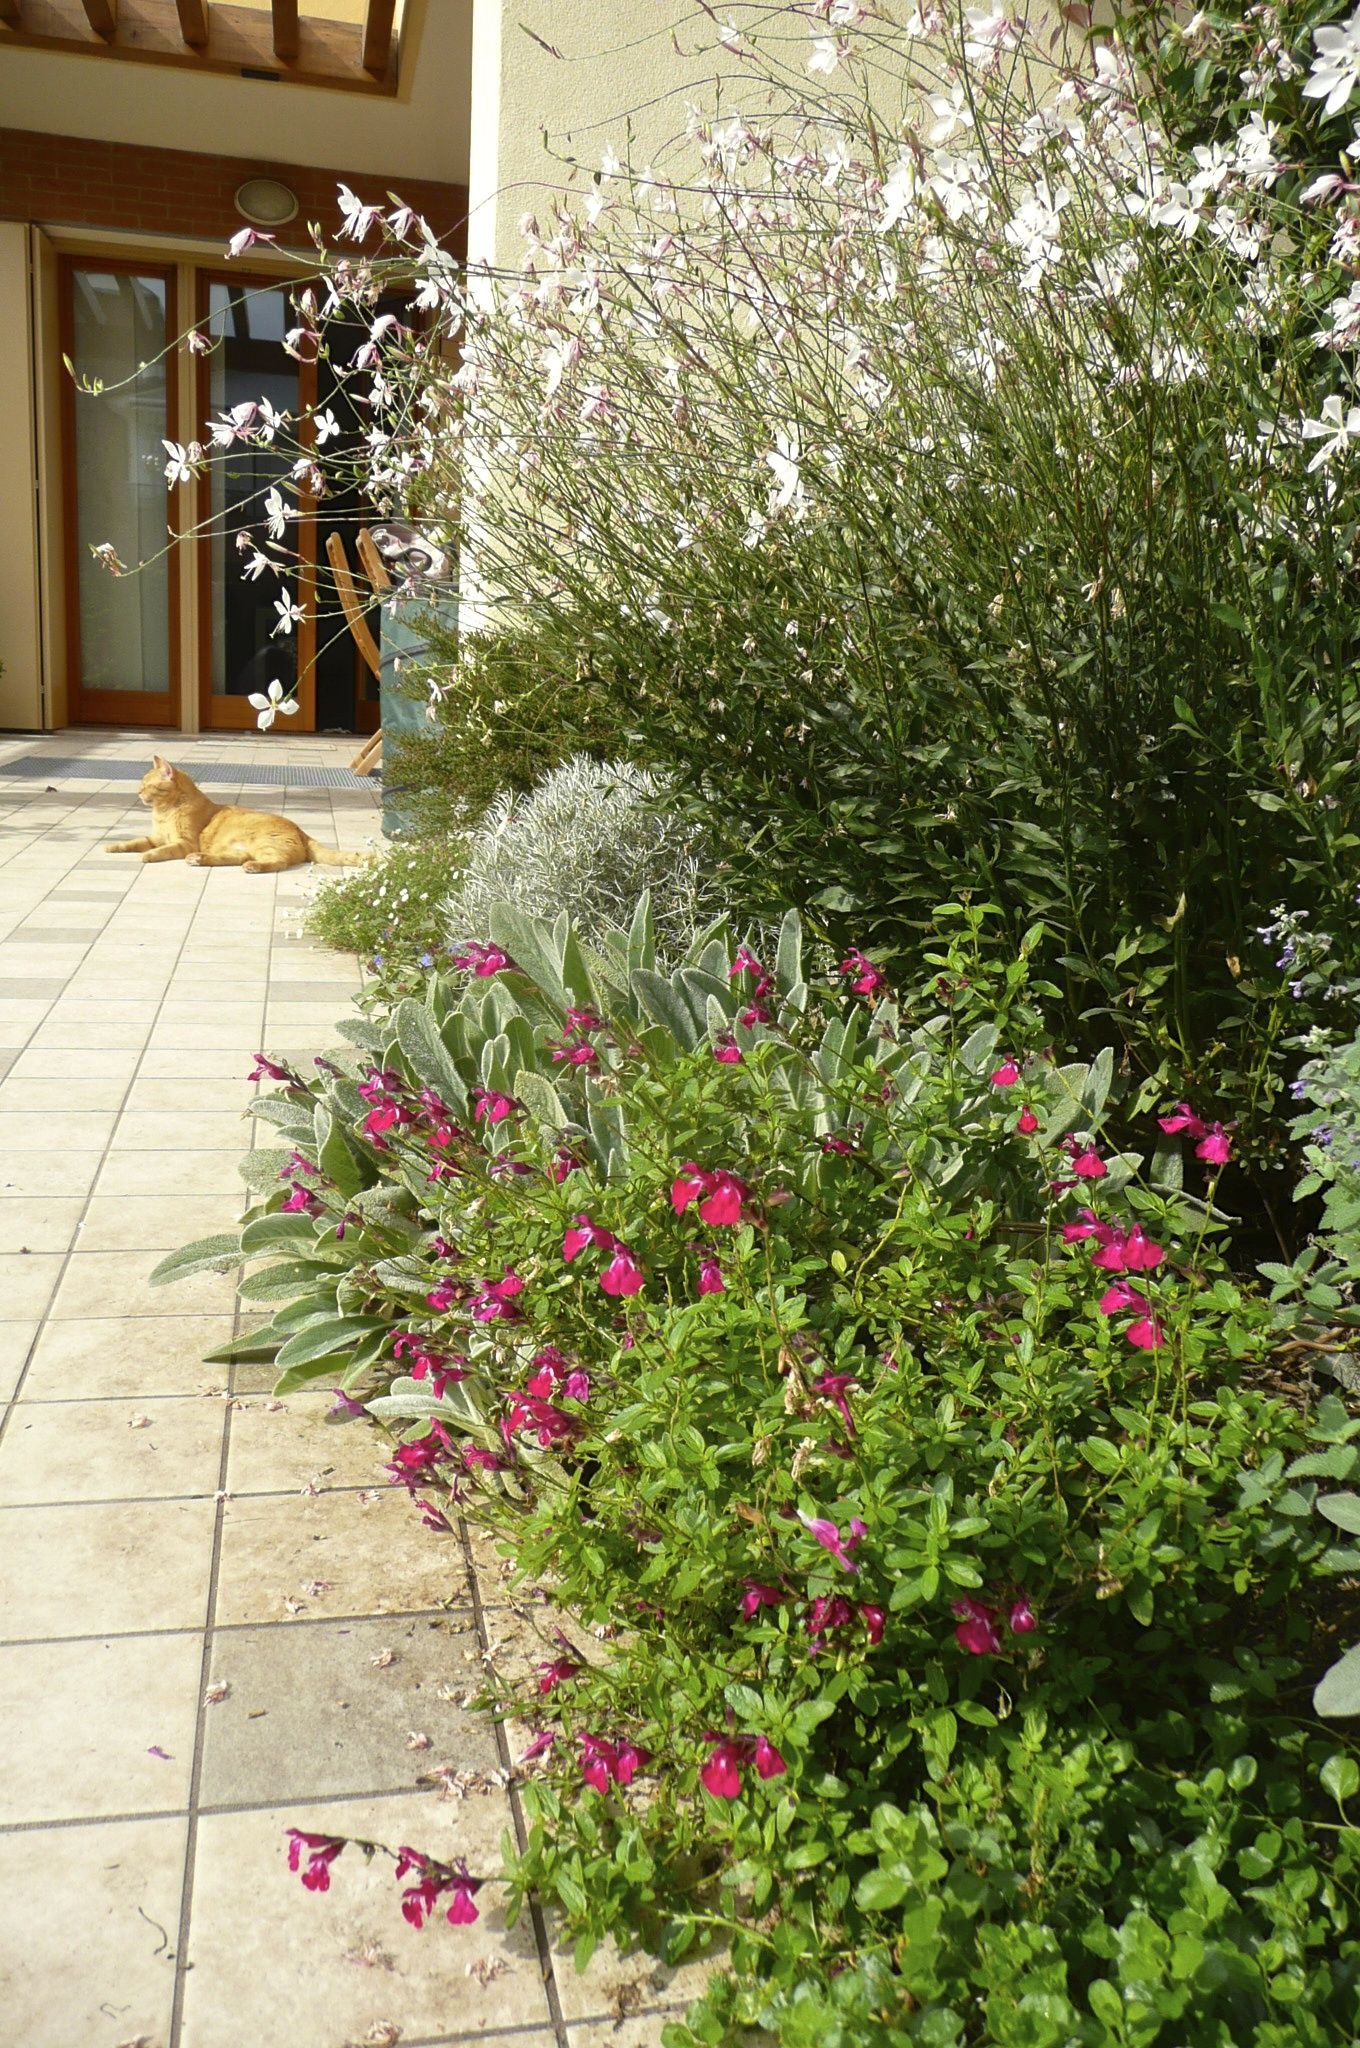 October 2012 Border with Gaura lindheimeri Whirling Butterflies Salvia x jamensis Rapso and others